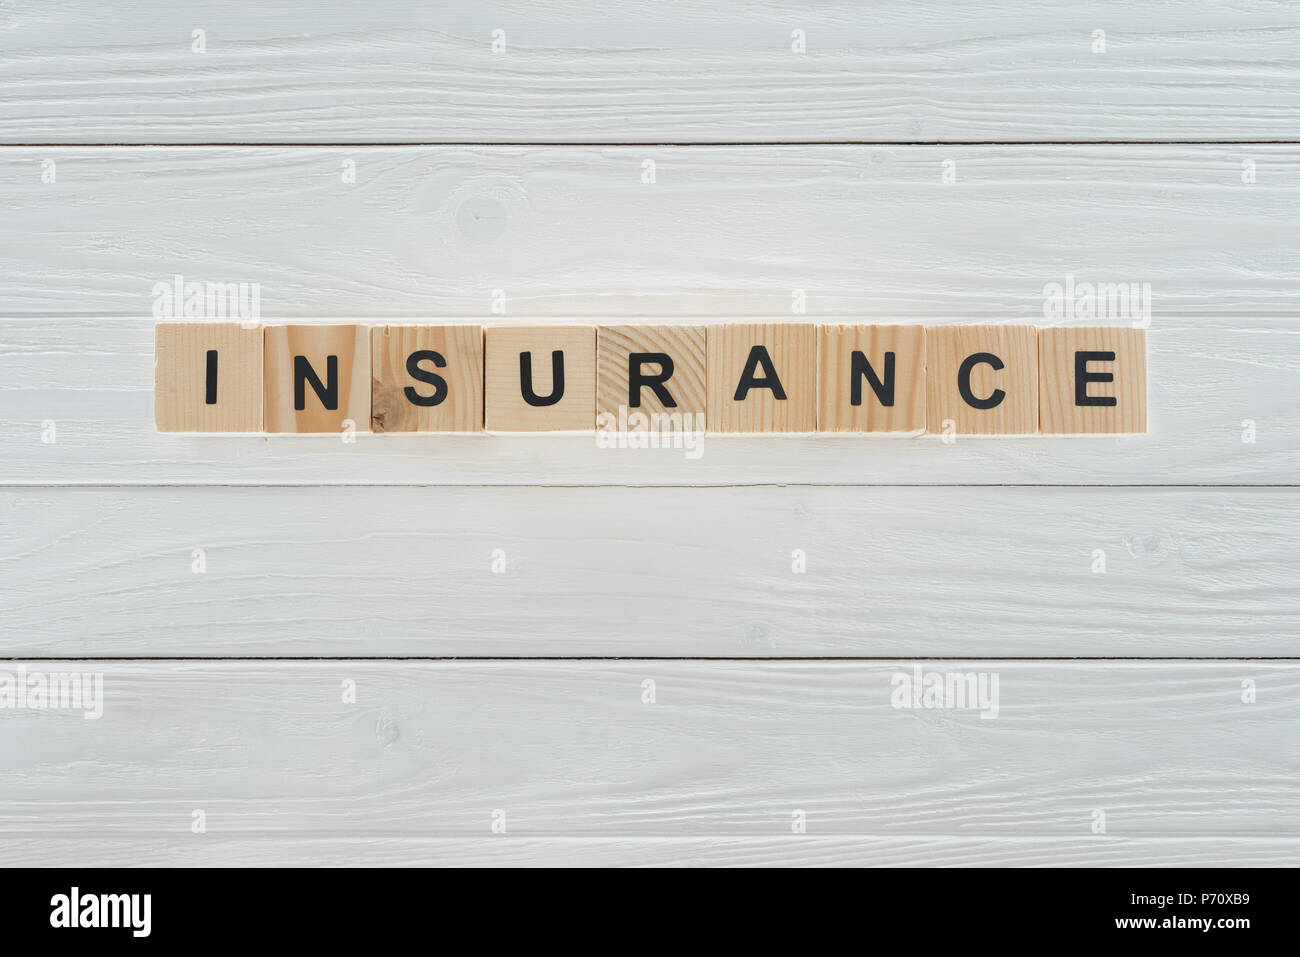 top view of insurance word made of wooden blocks on white wooden surface Stock Photo